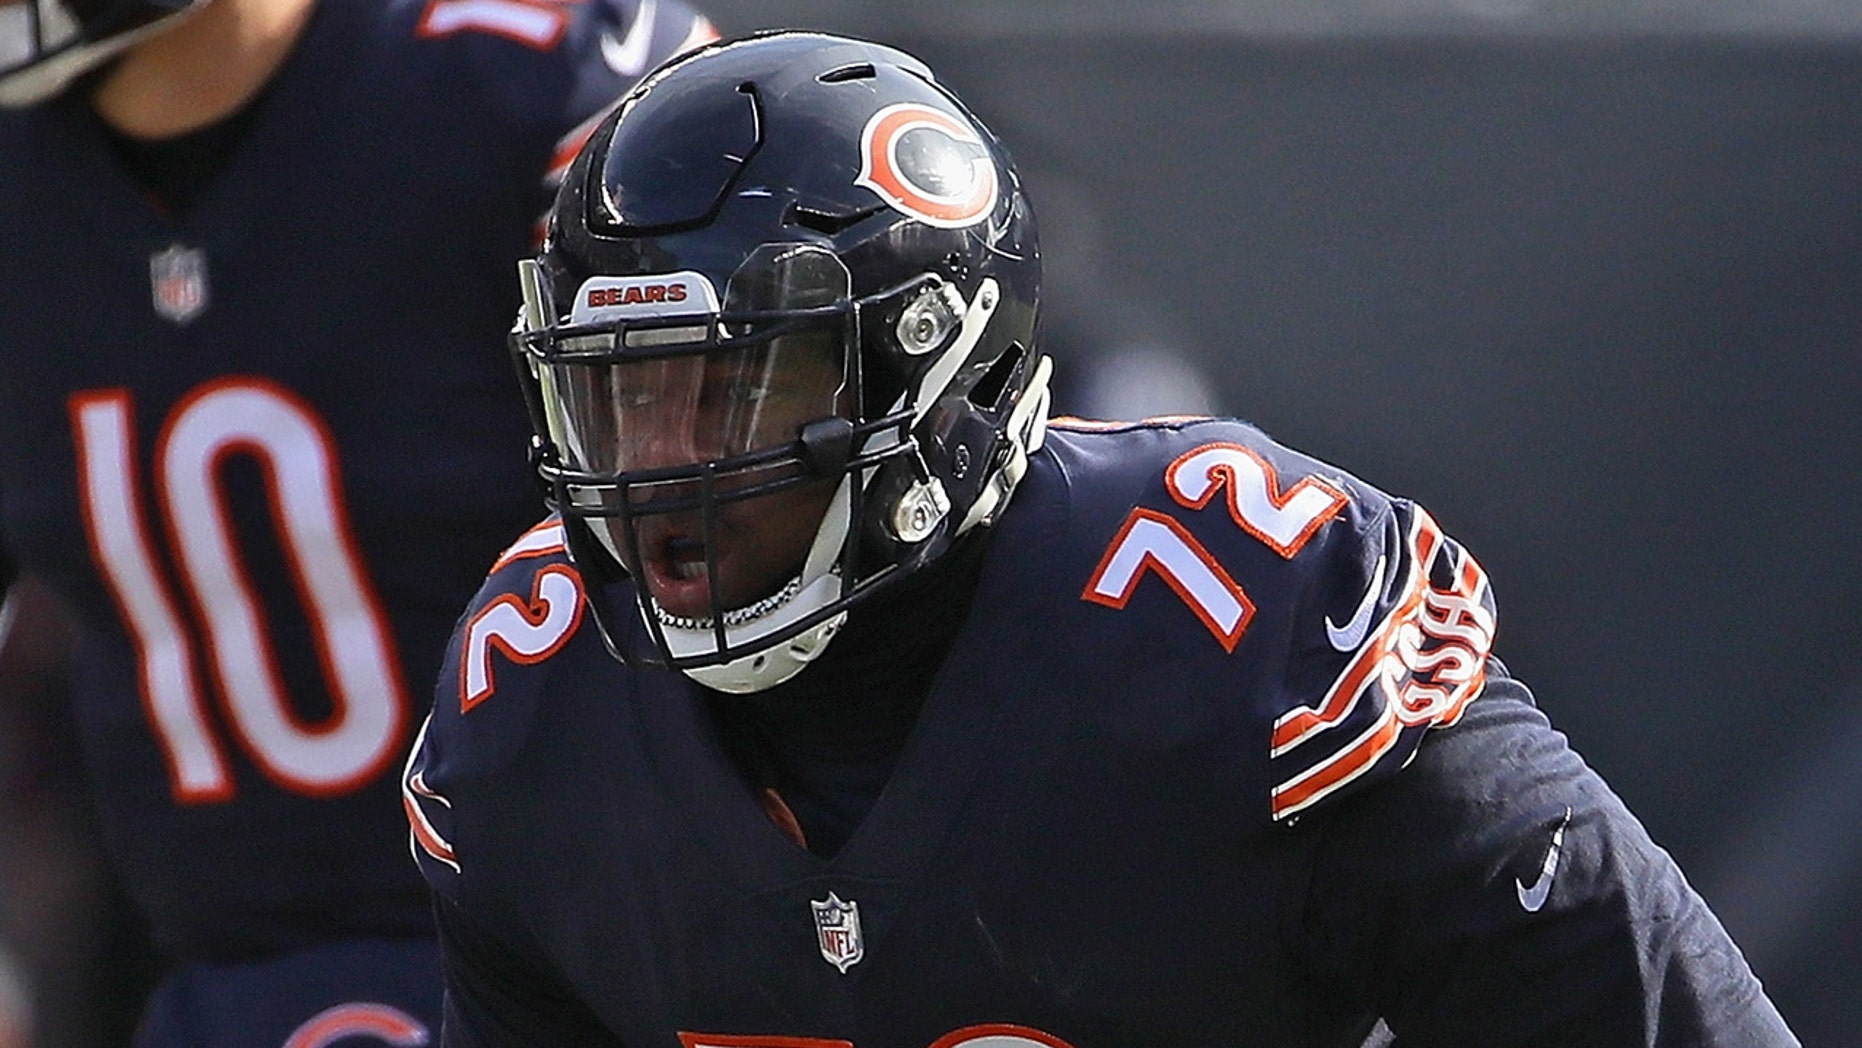 Charles Leno Jr. proposed to his girlfriend after his Chicago Bears defeated the Green Bay Packers to clinch the NFC North division title.